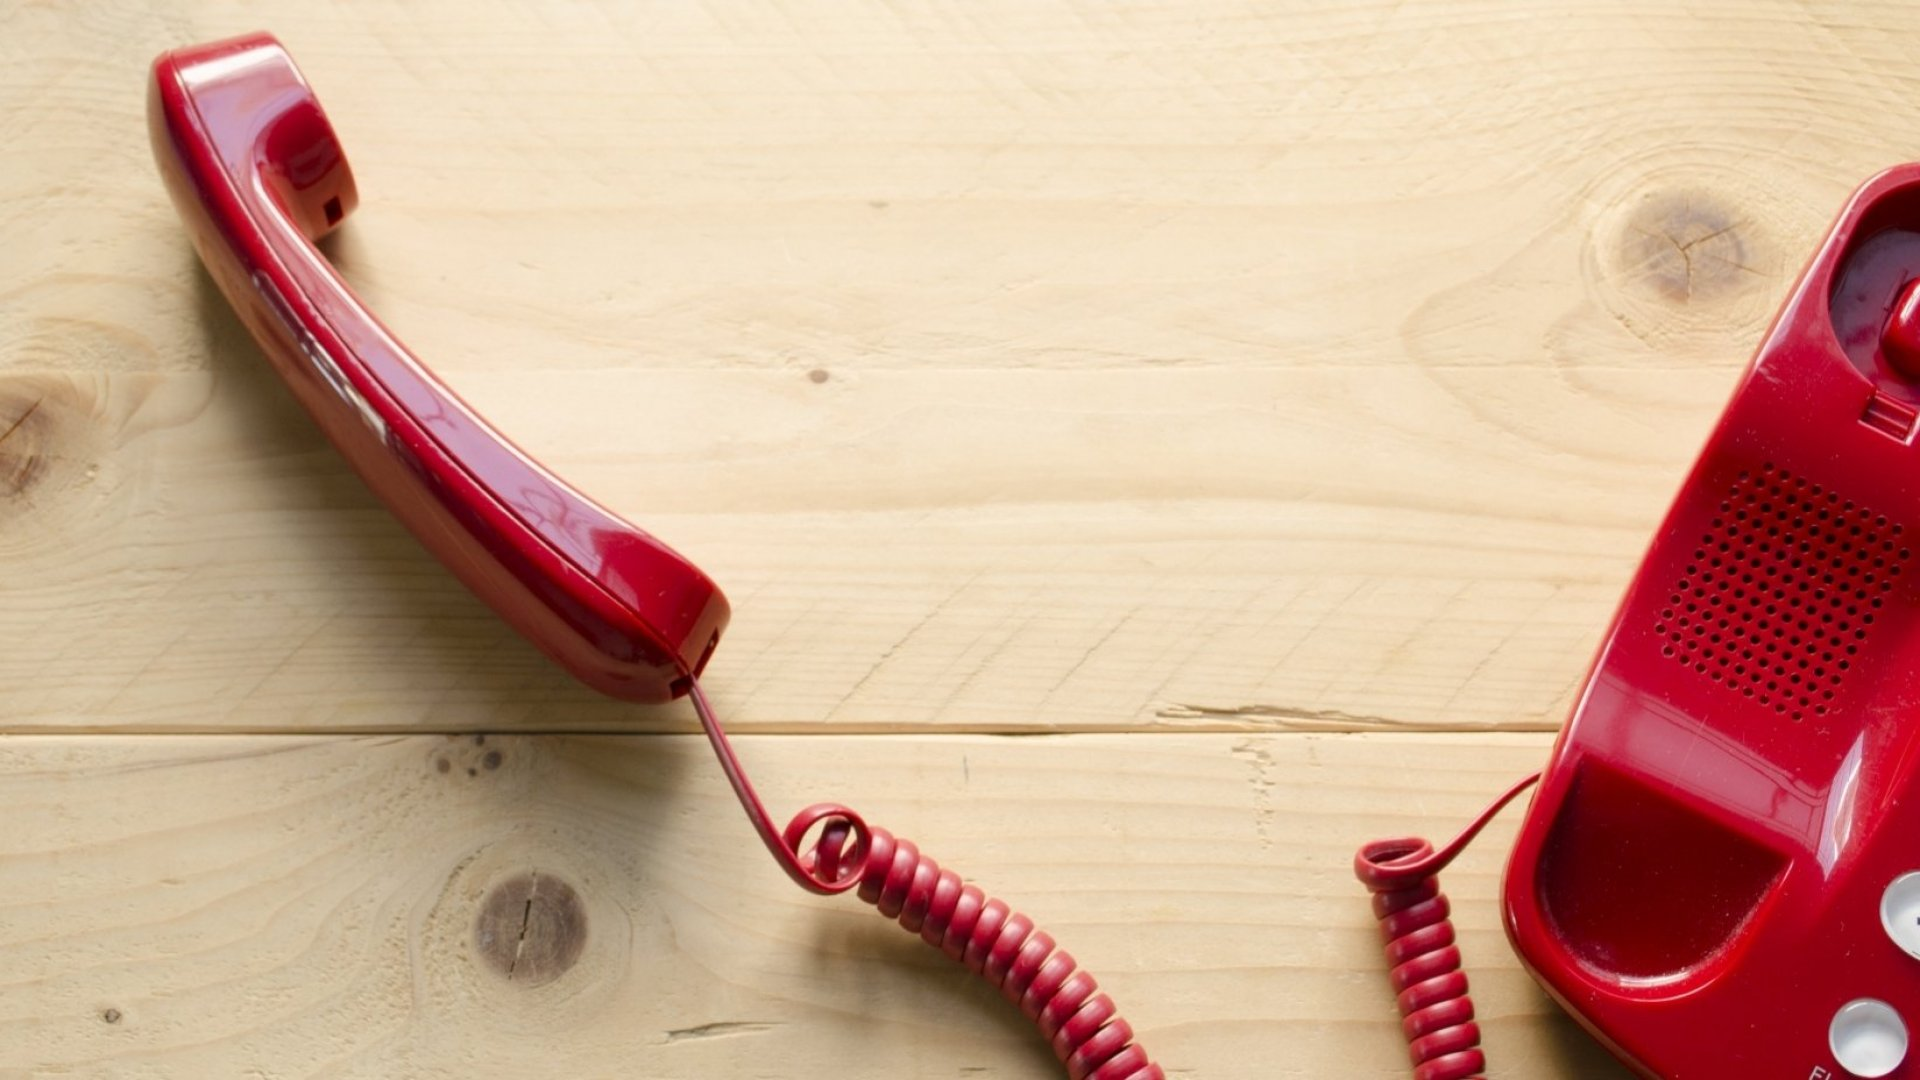 How to Deal With a Salesperson Who Won't Take 'No' for an Answer